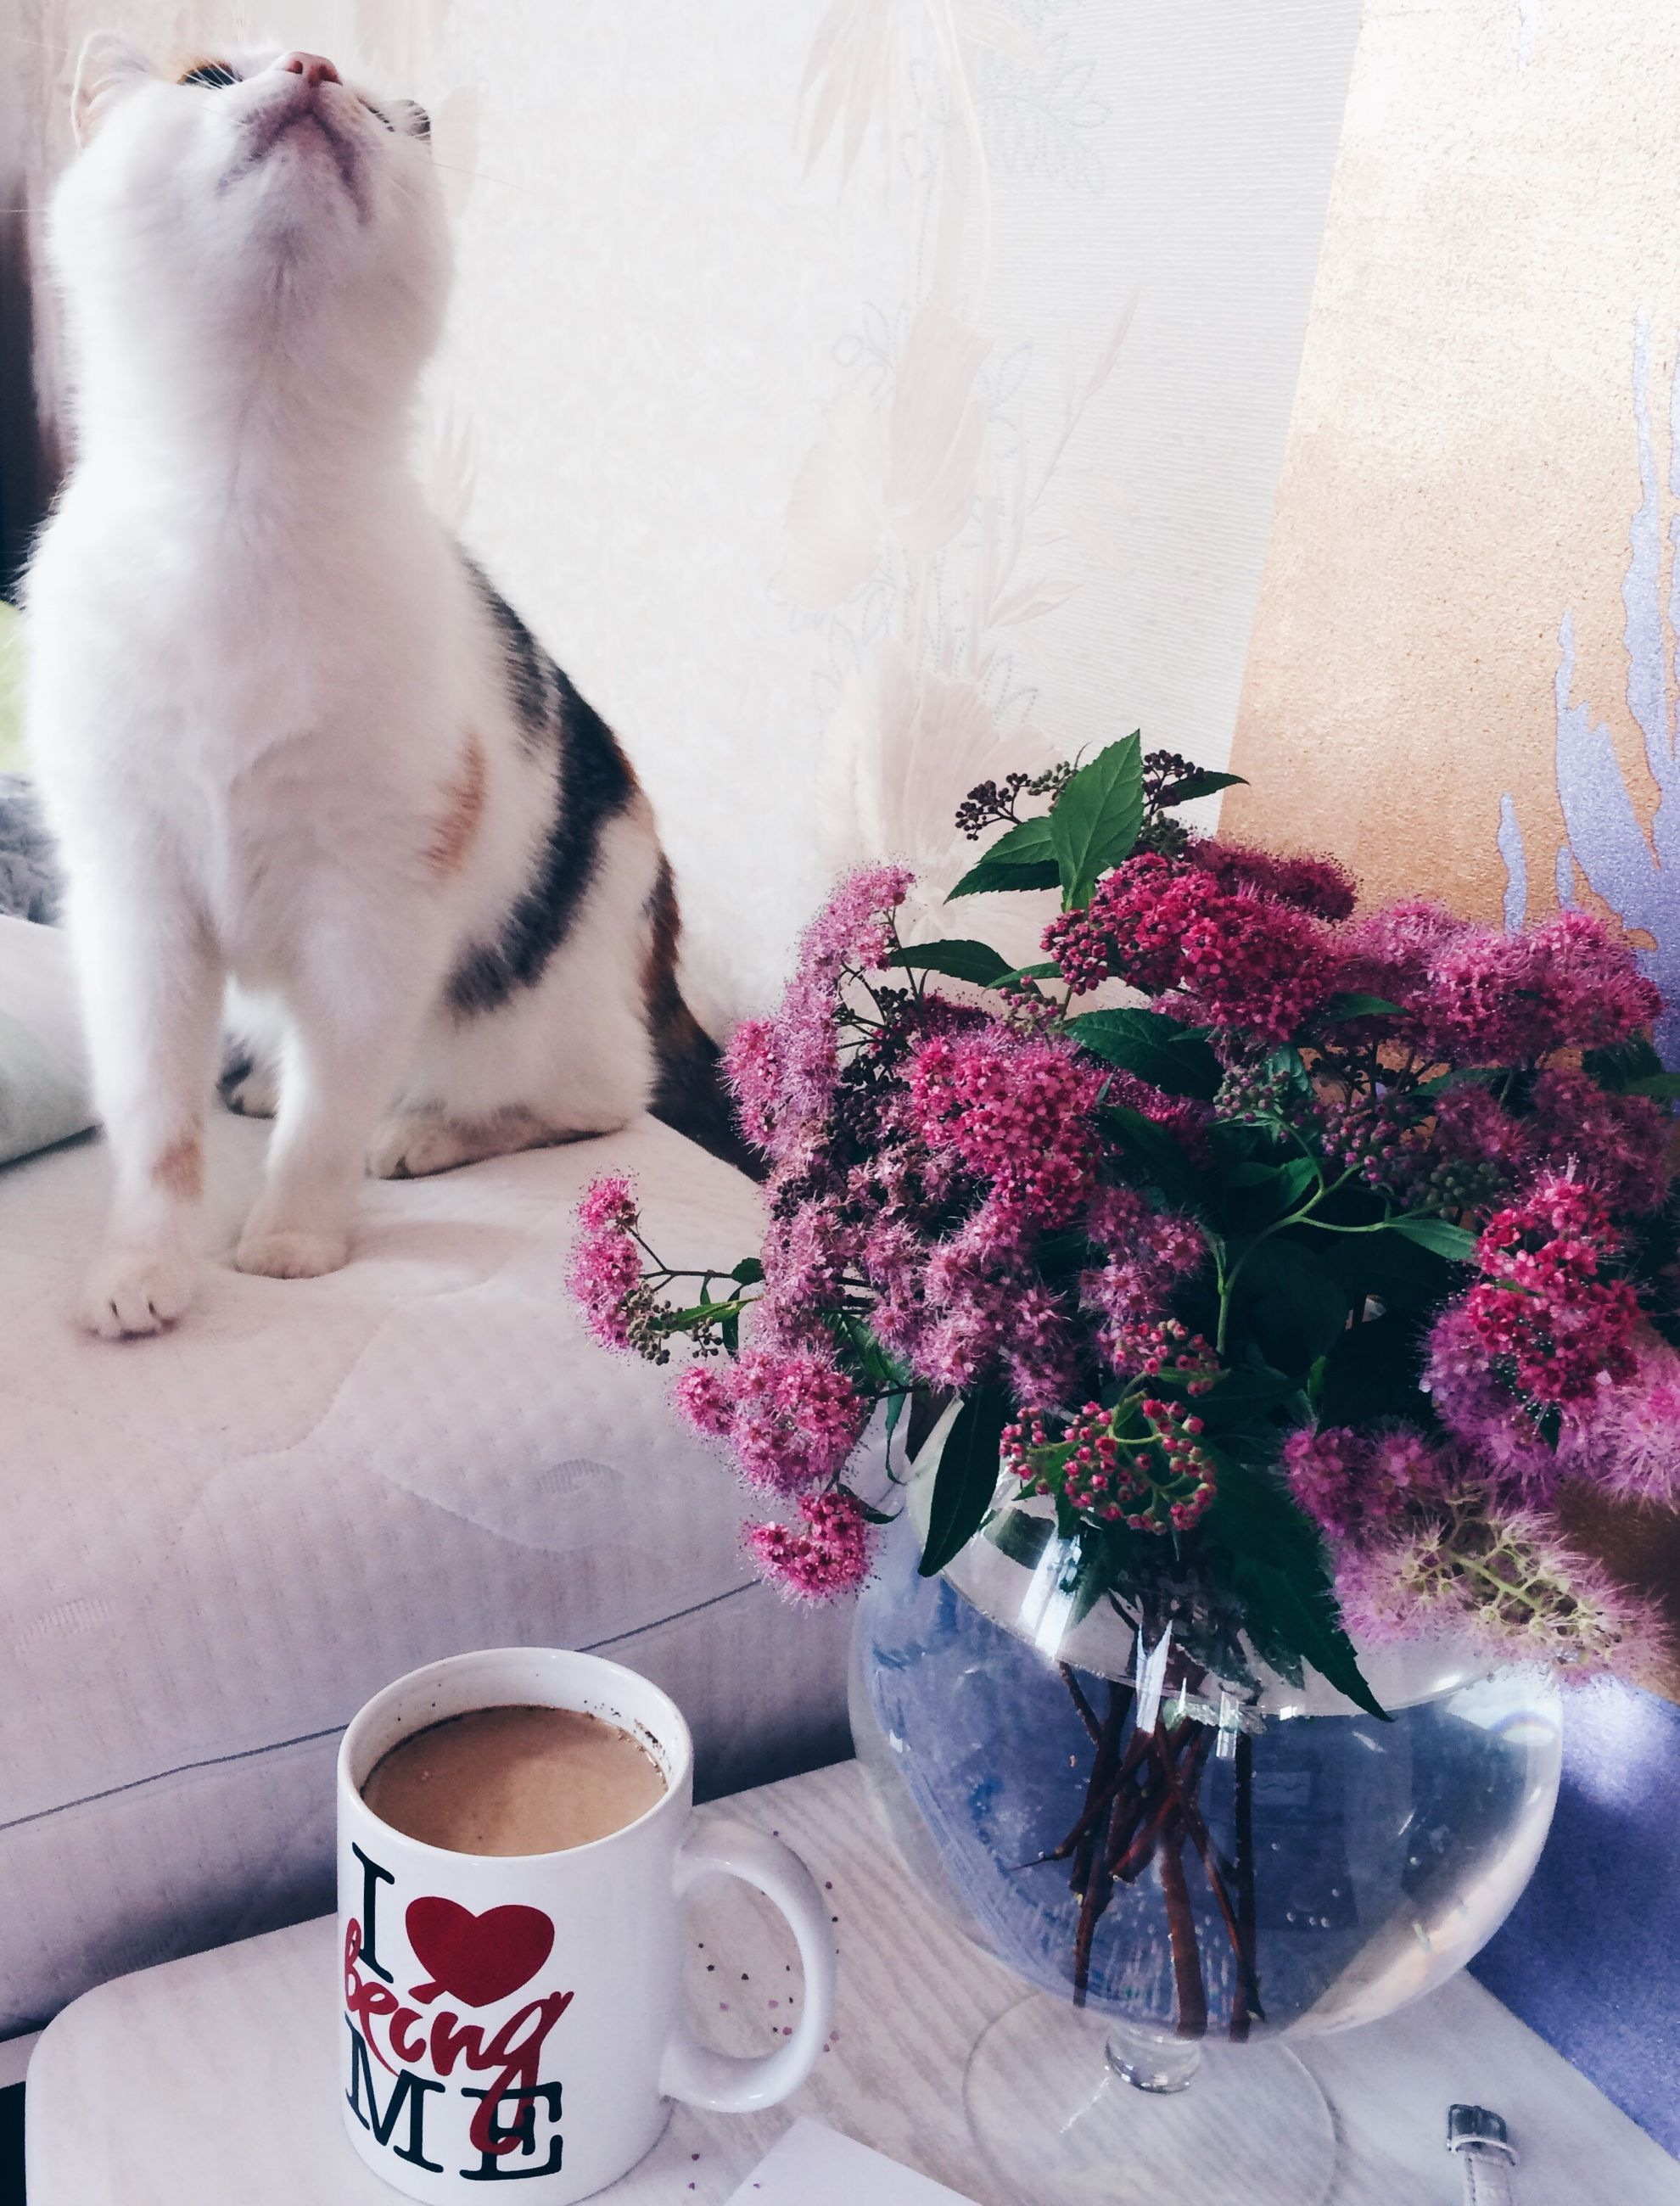 pets, domestic cat, domestic animals, one animal, flower, feline, animal themes, mammal, coffee cup, indoors, table, cat, coffee - drink, freshness, refreshment, food and drink, no people, day, nature, close-up